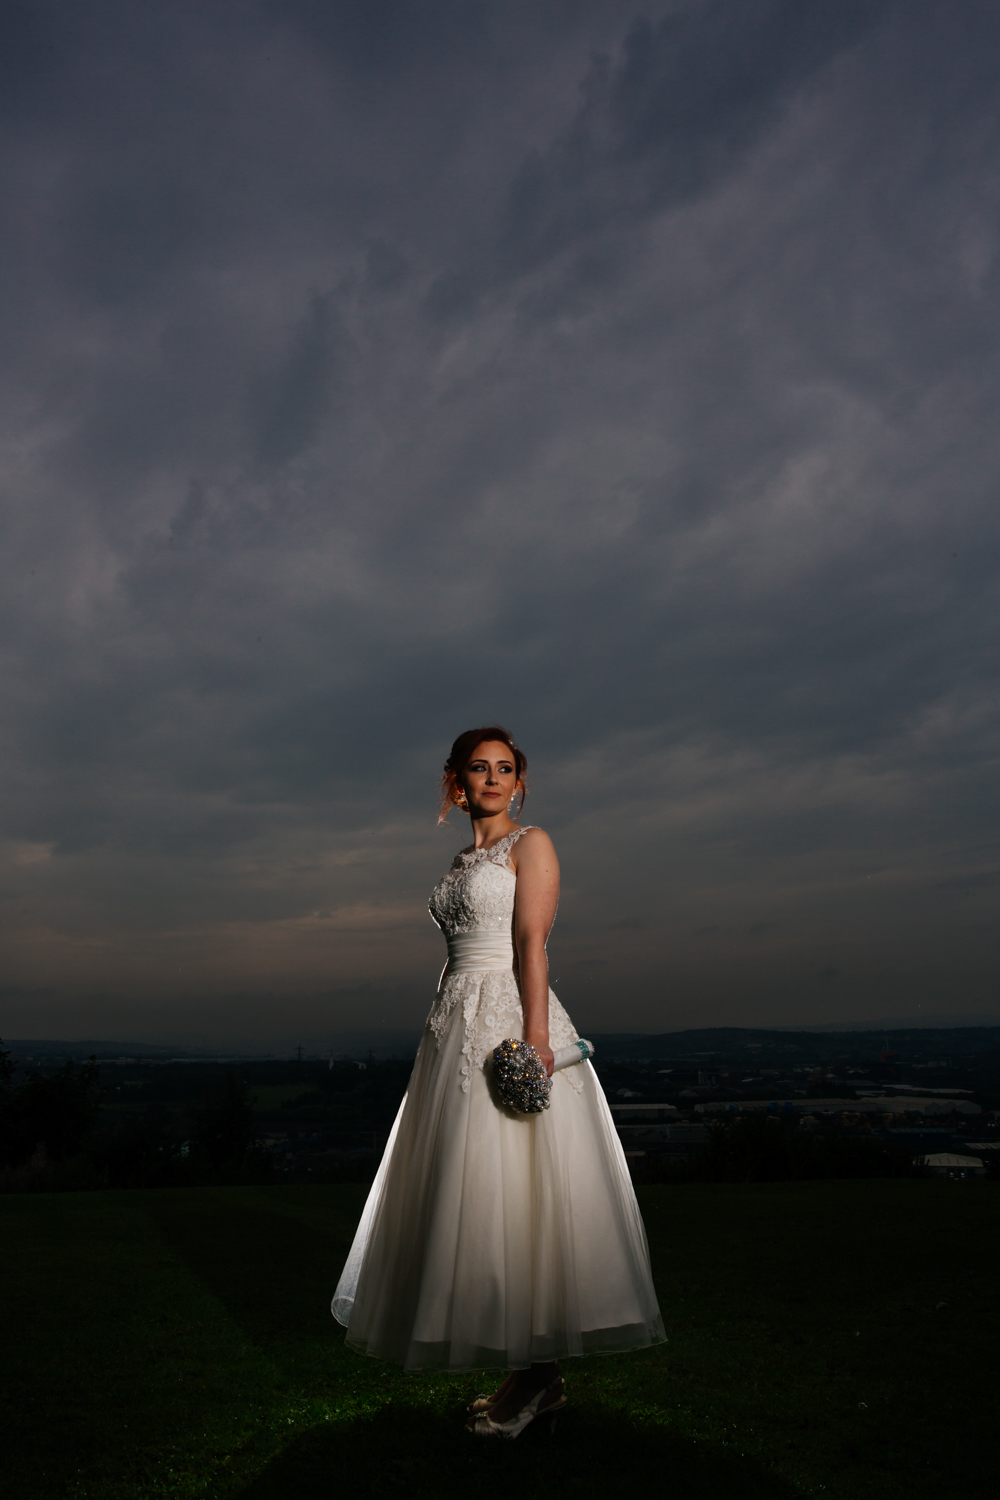 wedding photographers in sheffield39.jpg